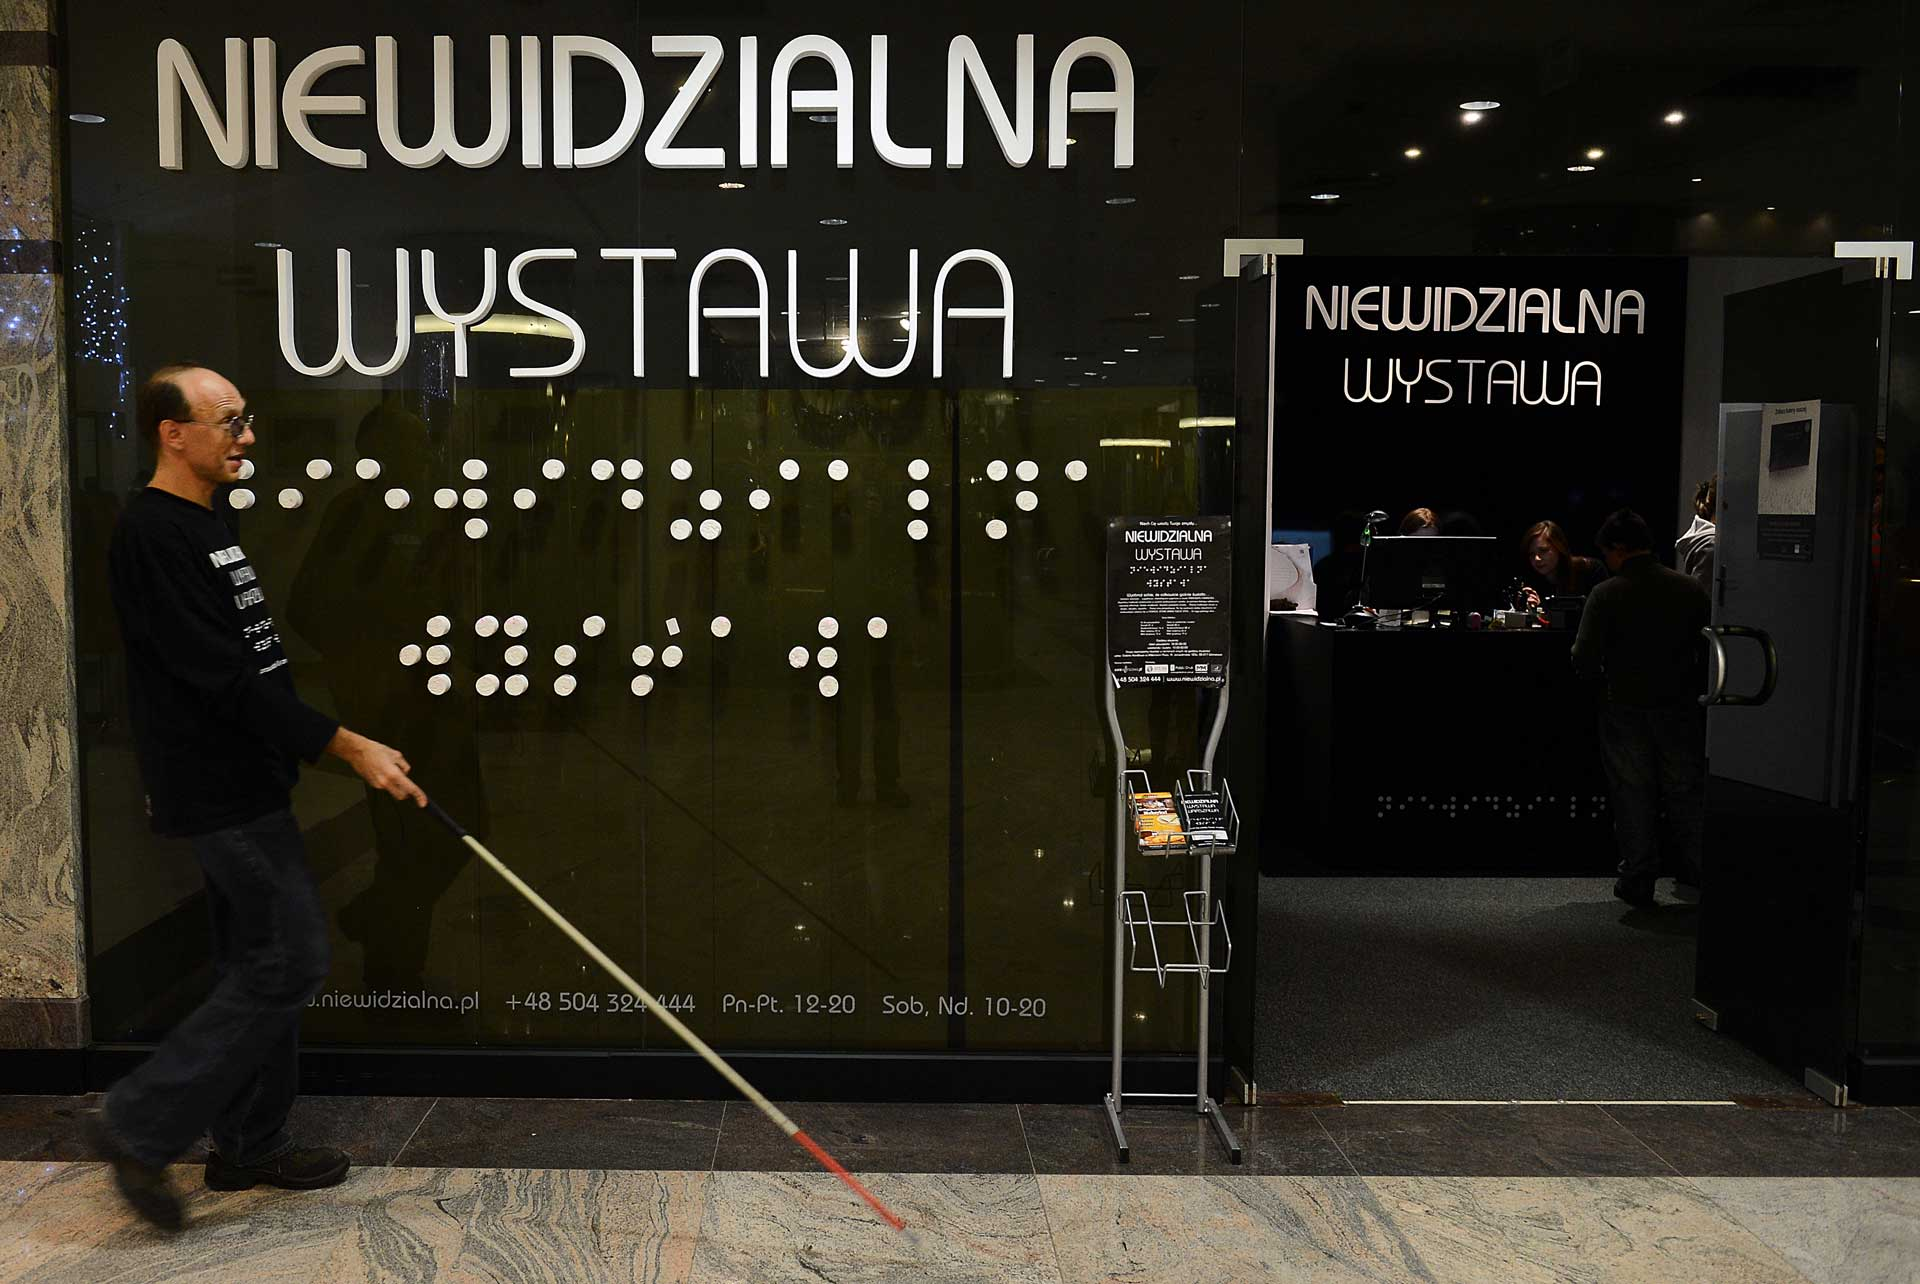 A blind guide walks past the entrance to the 'invisible exhibition' on December 18, 2012 in Warsaw.